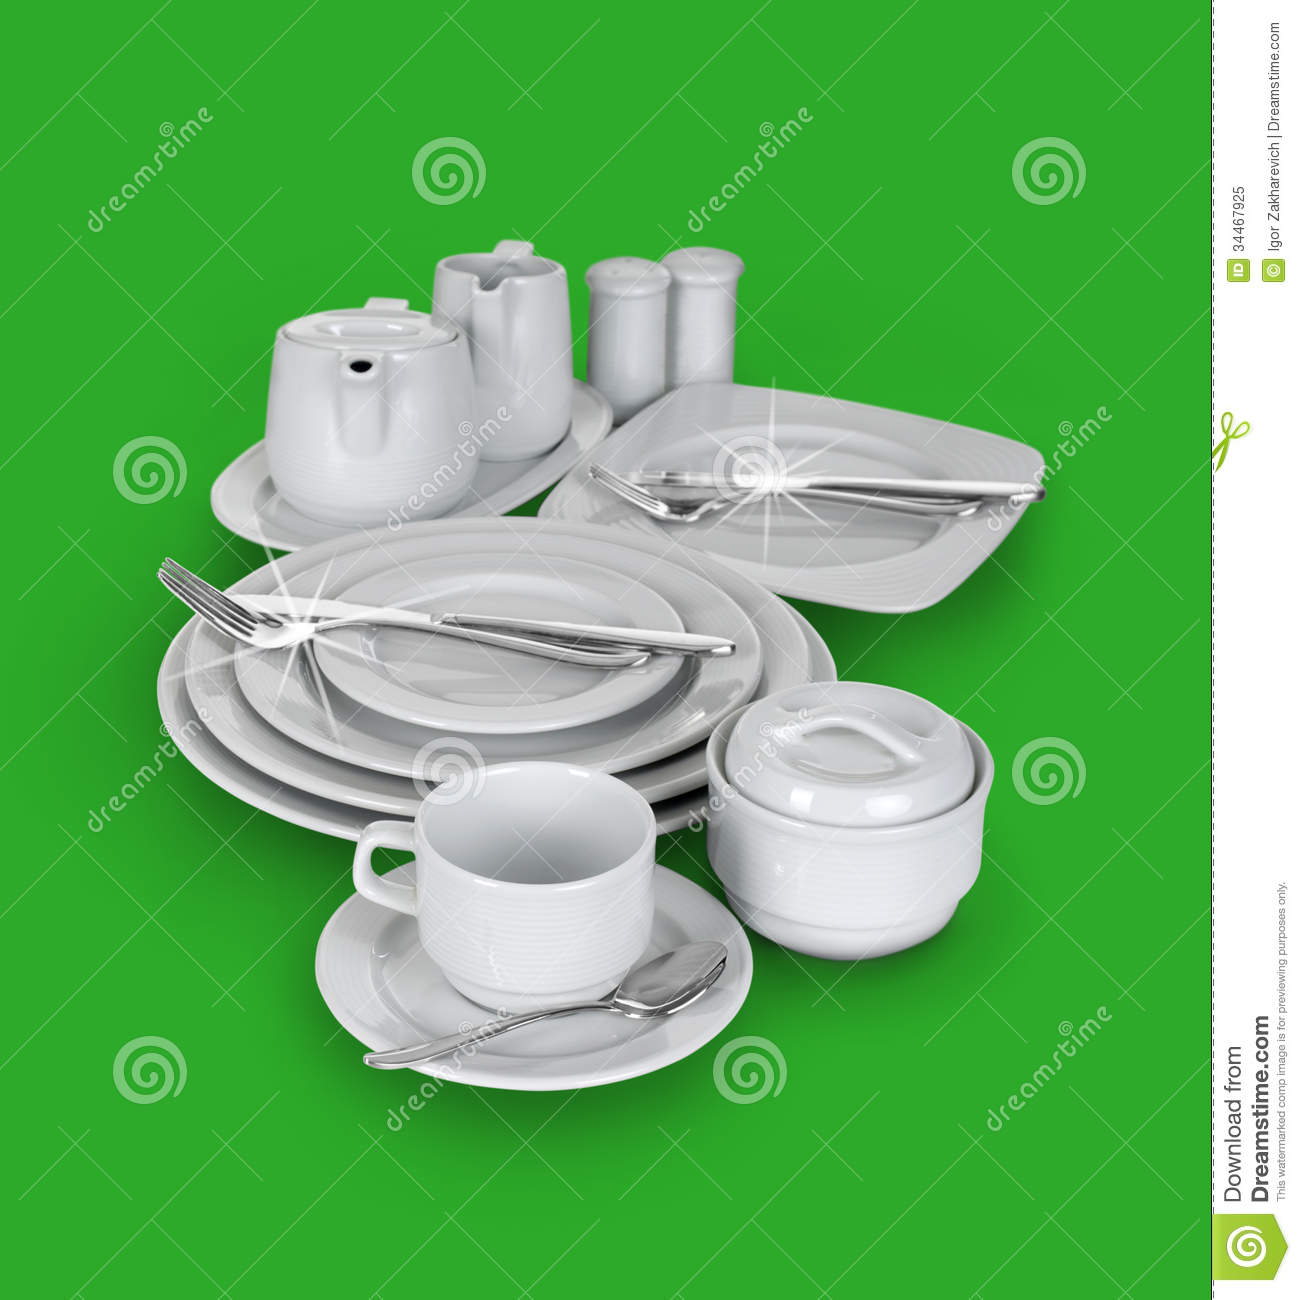 Kitchen set of cups plates and glasses stock image for Kitchen set plates